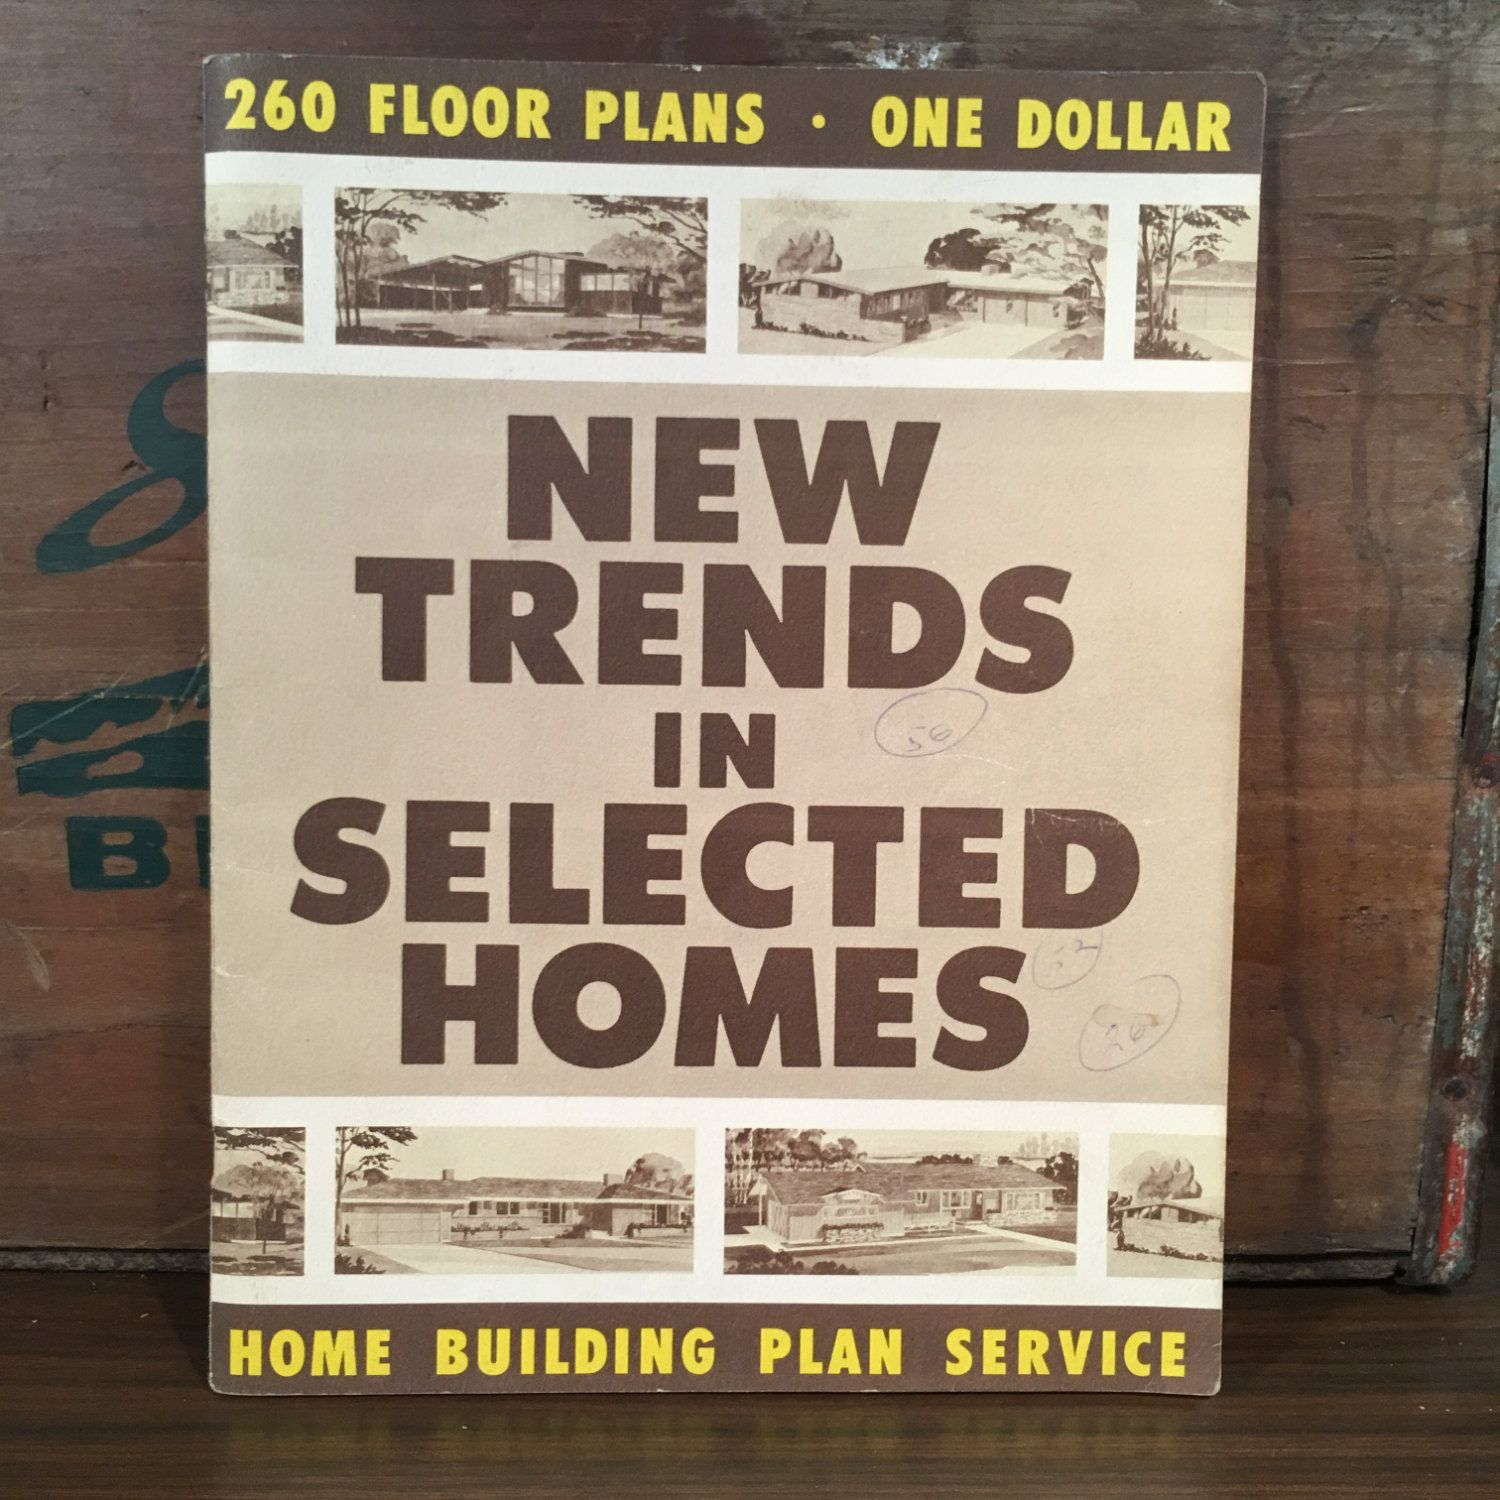 New trends in selected homes 1957 home building plan service new trends in selected homes 1957 home building plan service vintage mid century house blueprint catalog malvernweather Choice Image